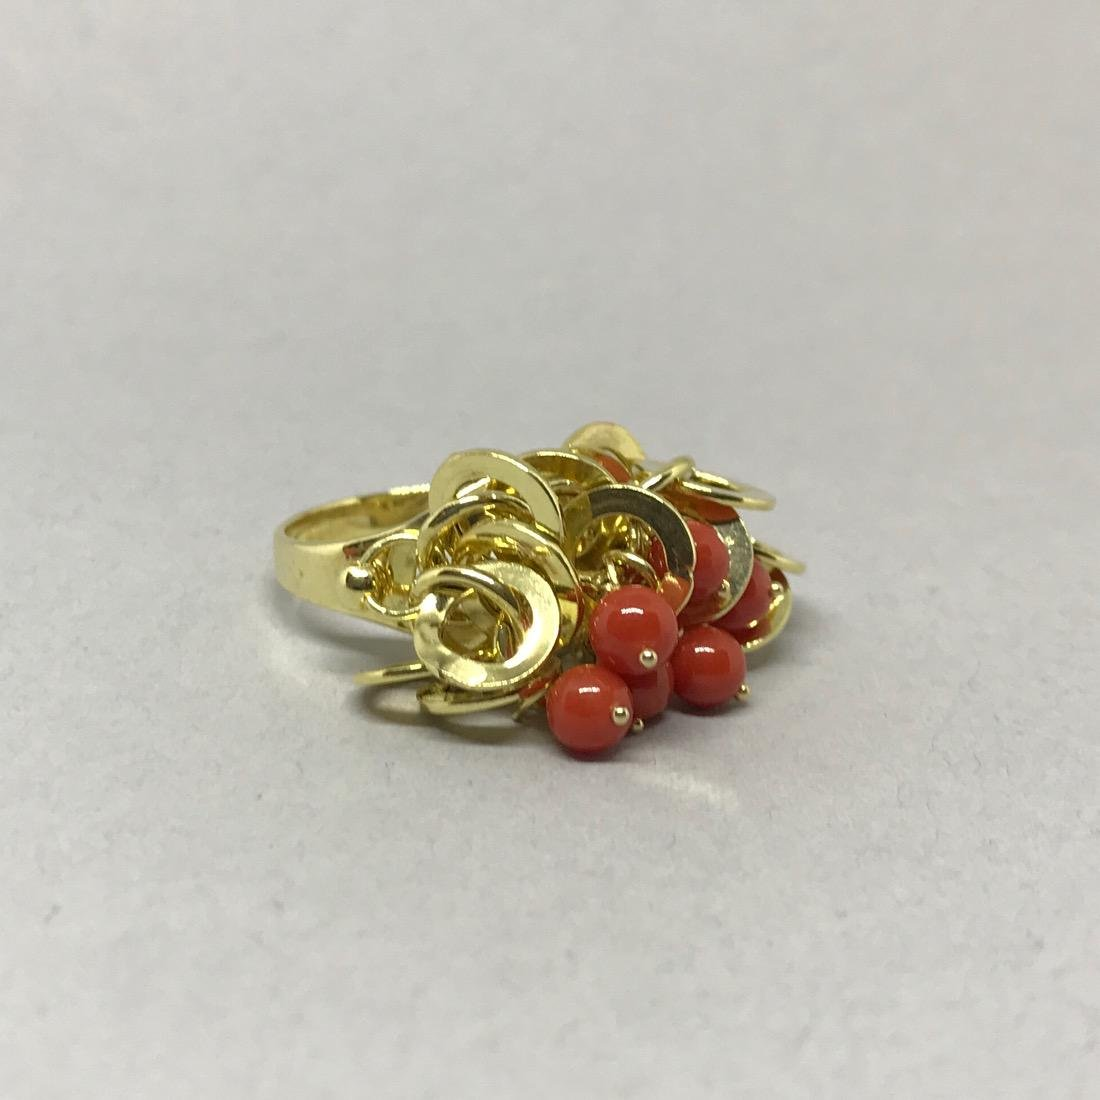 14 Kt Gold Cocktail Ring with Coral Beads.